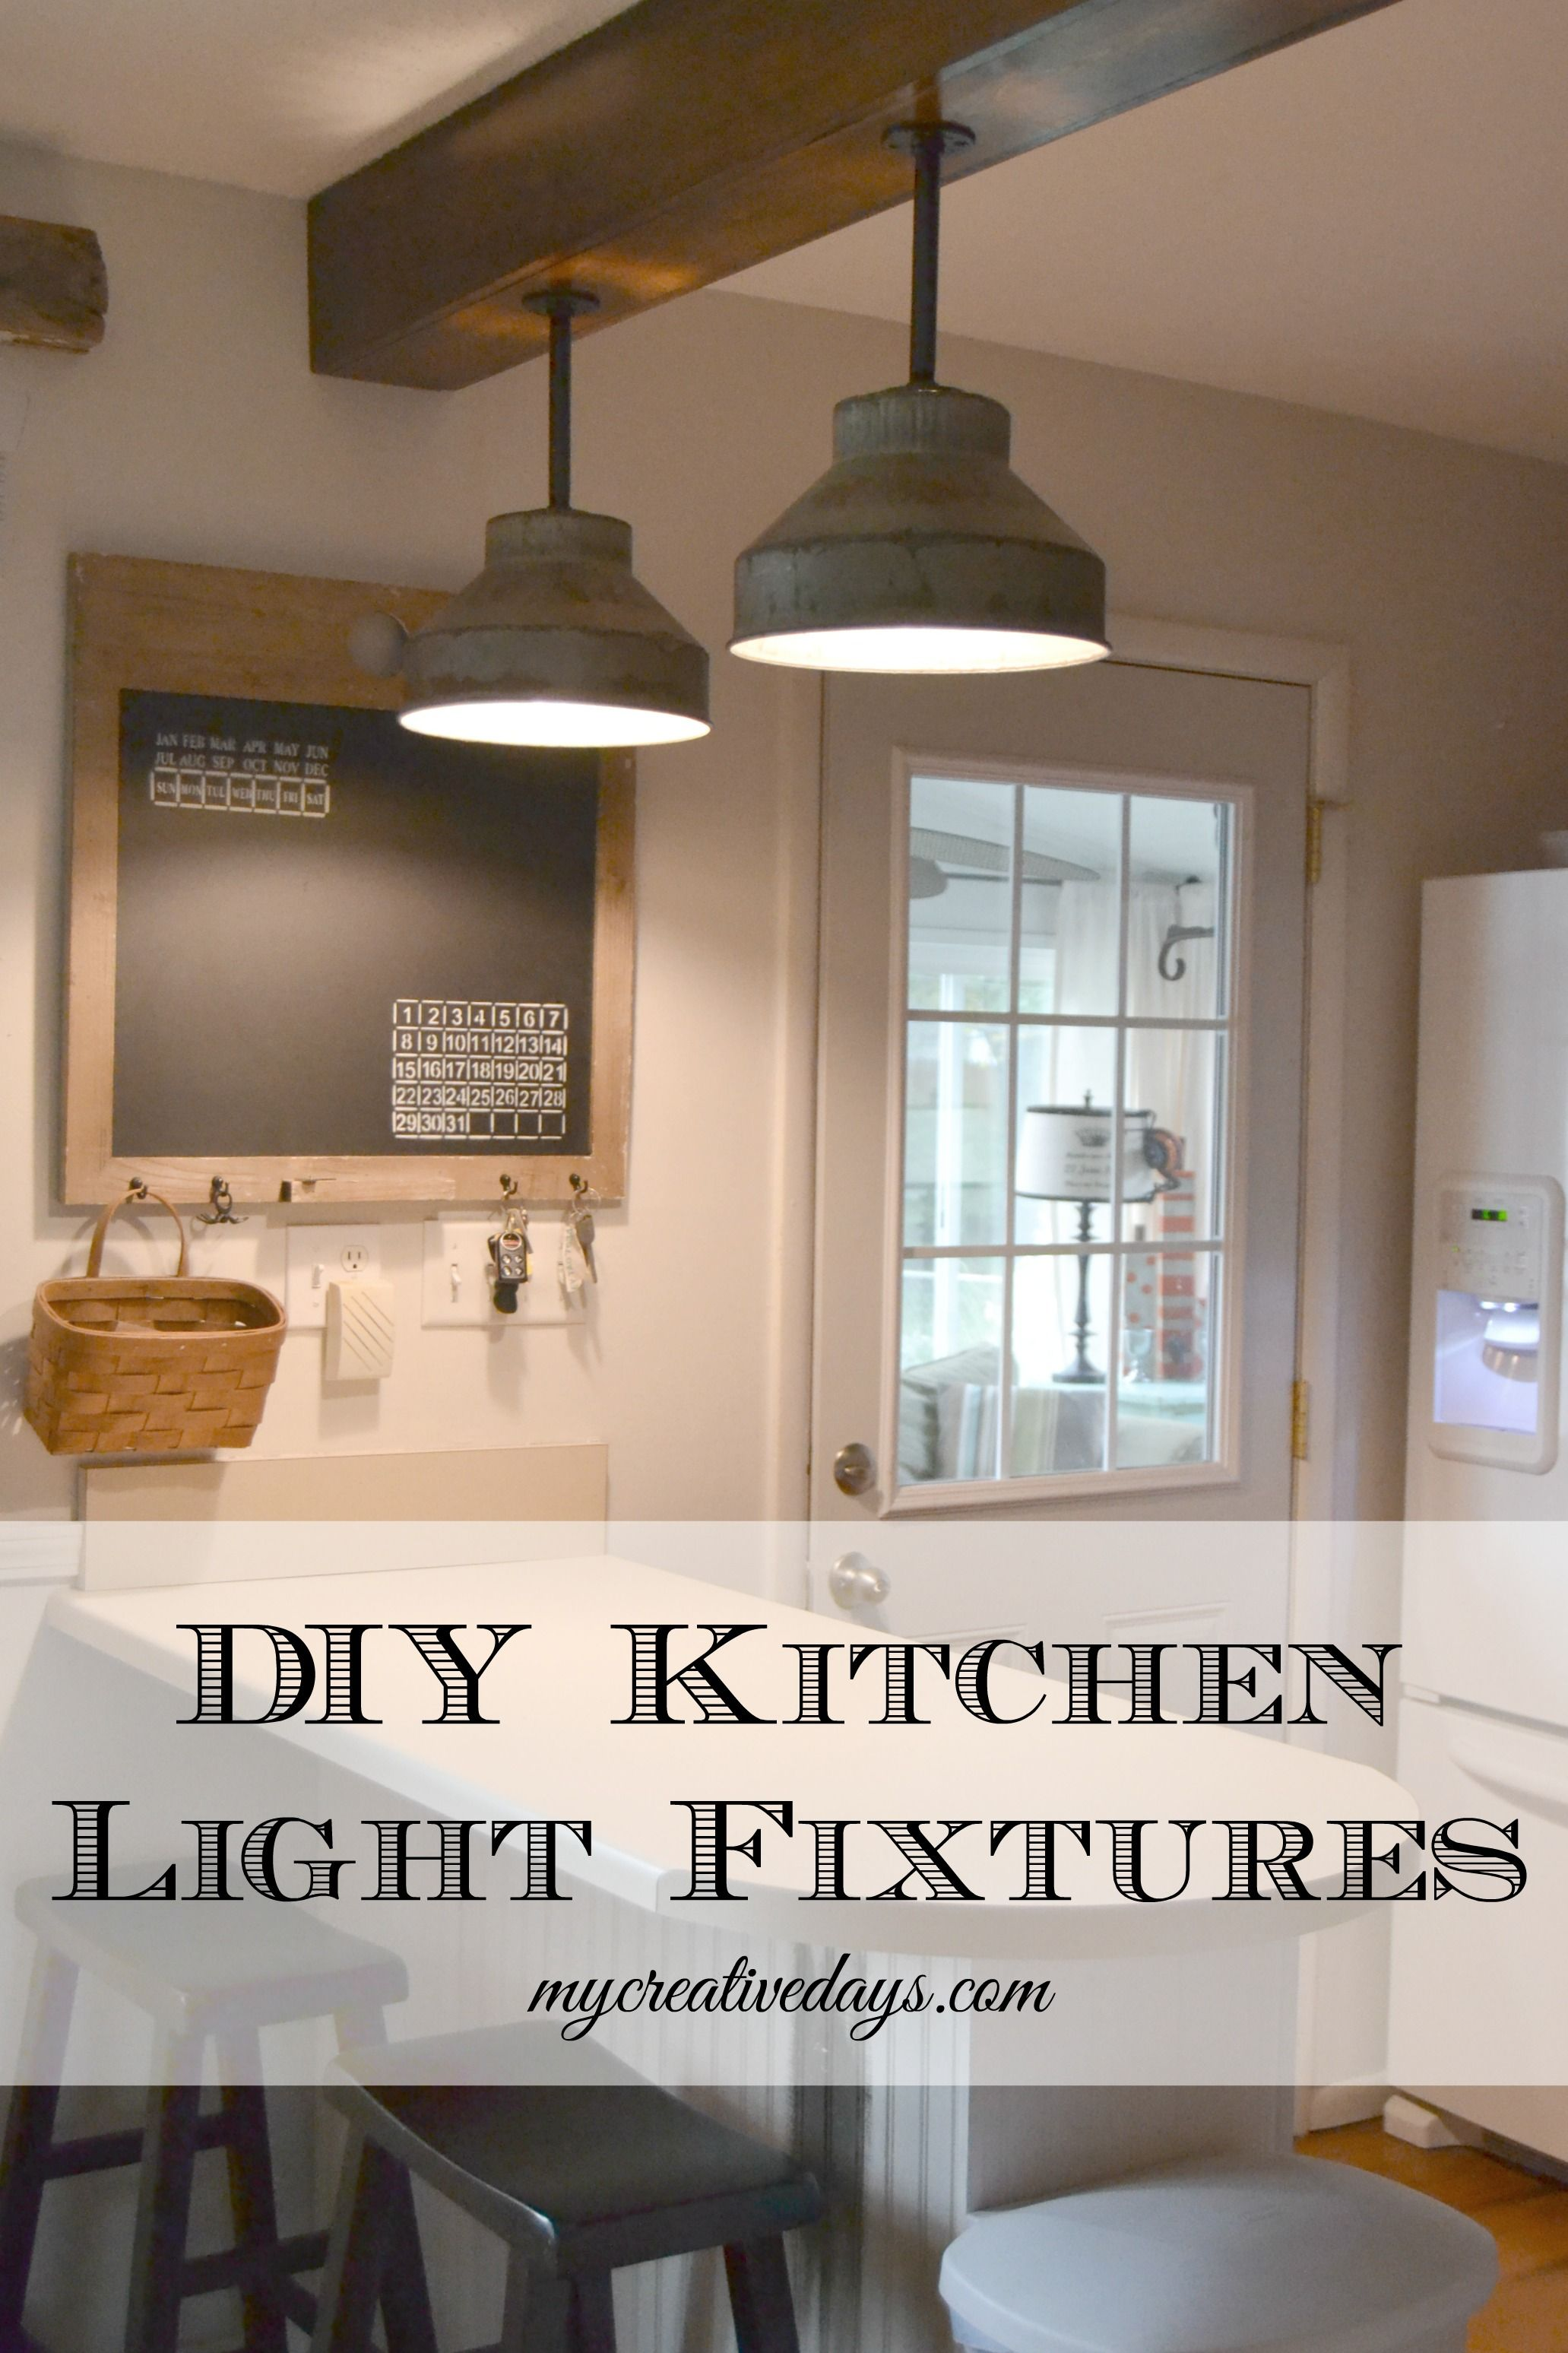 Diy kitchen light fixtures part diy kitchen lighting kitchen